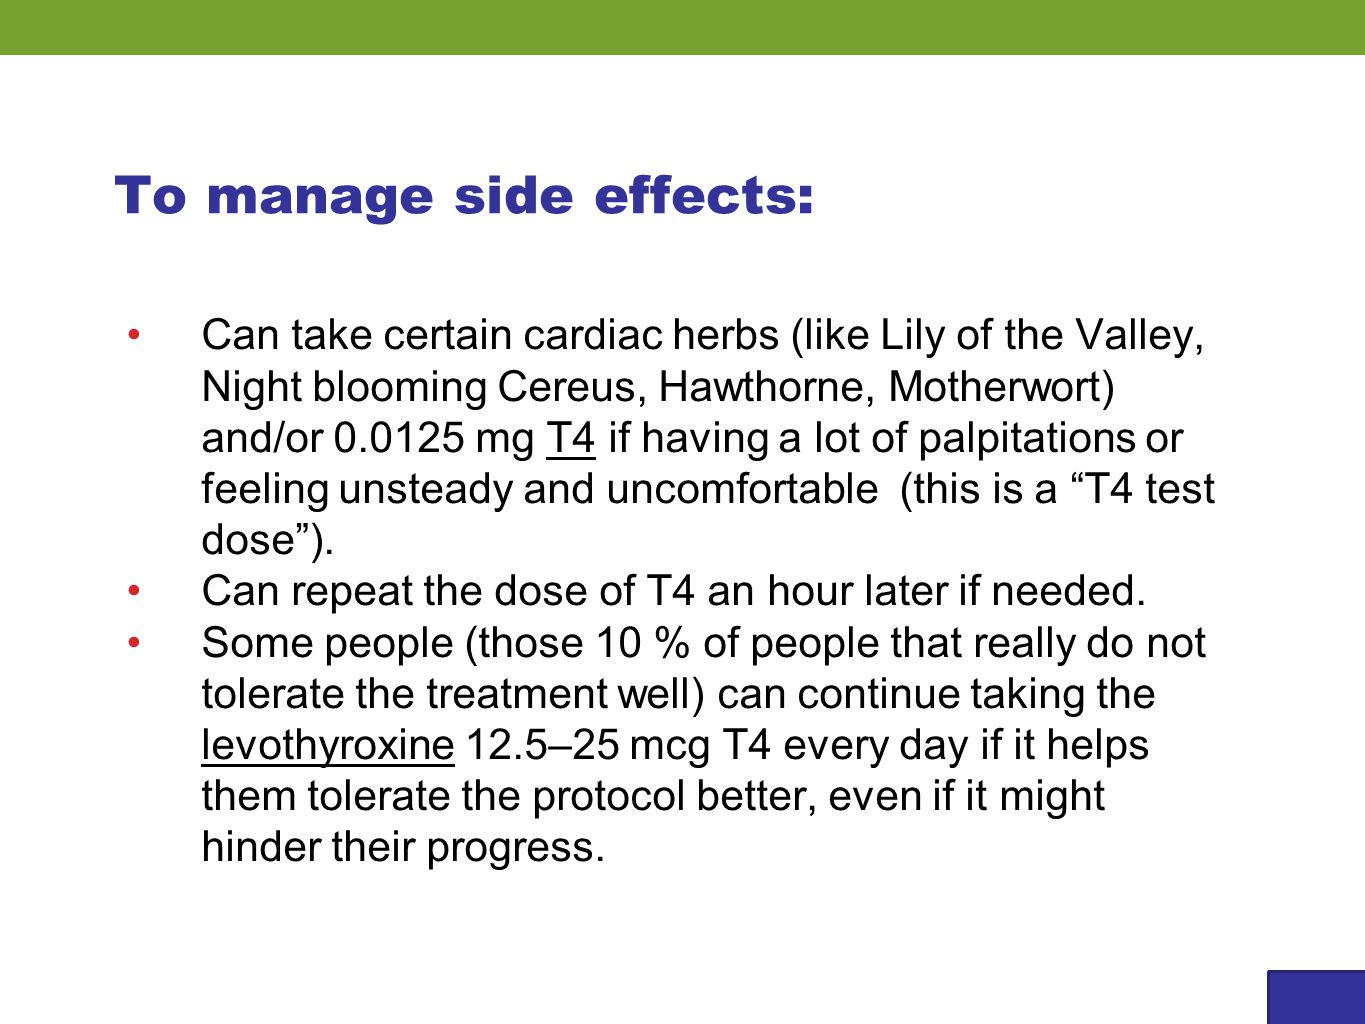 To manage side effects: Can take certain cardiac herbs (like Lily of the Valley, Night blooming Cereus, Hawthorne, Motherwort) and/or 0.0125 mg T4 if having a lot of palpitations or feeling unsteady and uncomfortable (this is a T4 test dose ).